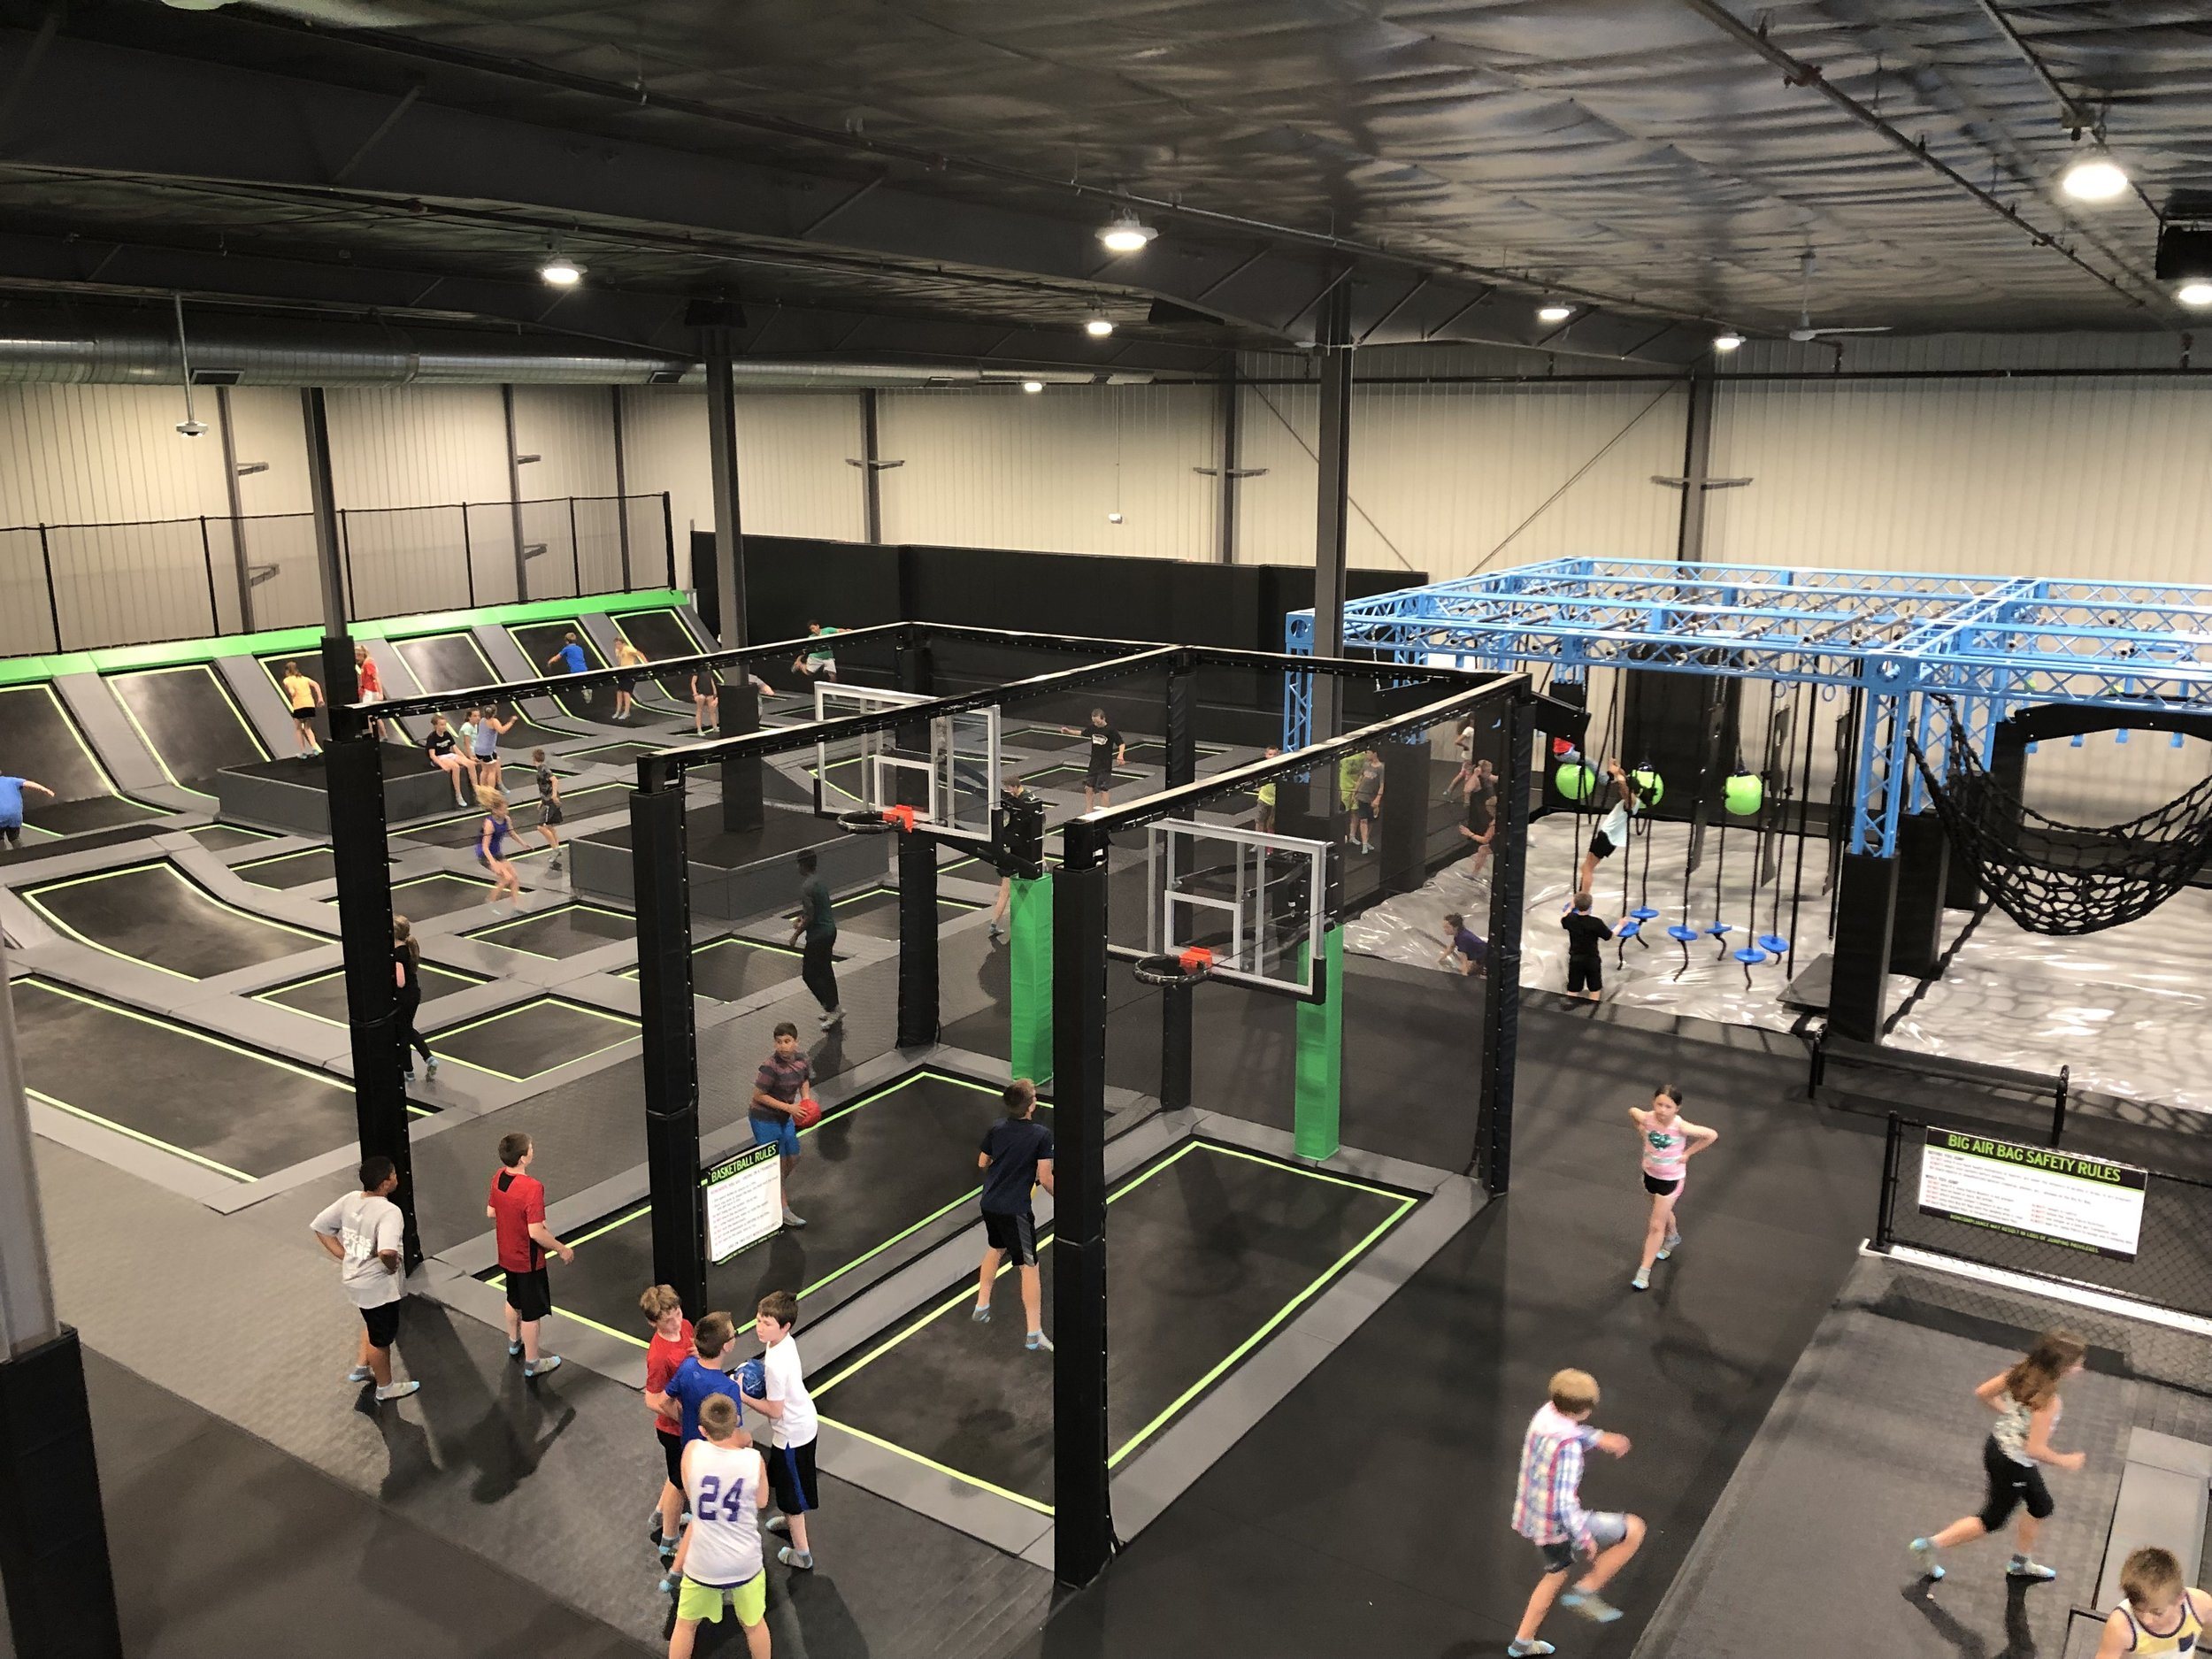 OPEN JUMP & TOT TIME - Bounce, jump, flip and soar across dozens of connected trampolines and off the trampoline walls.